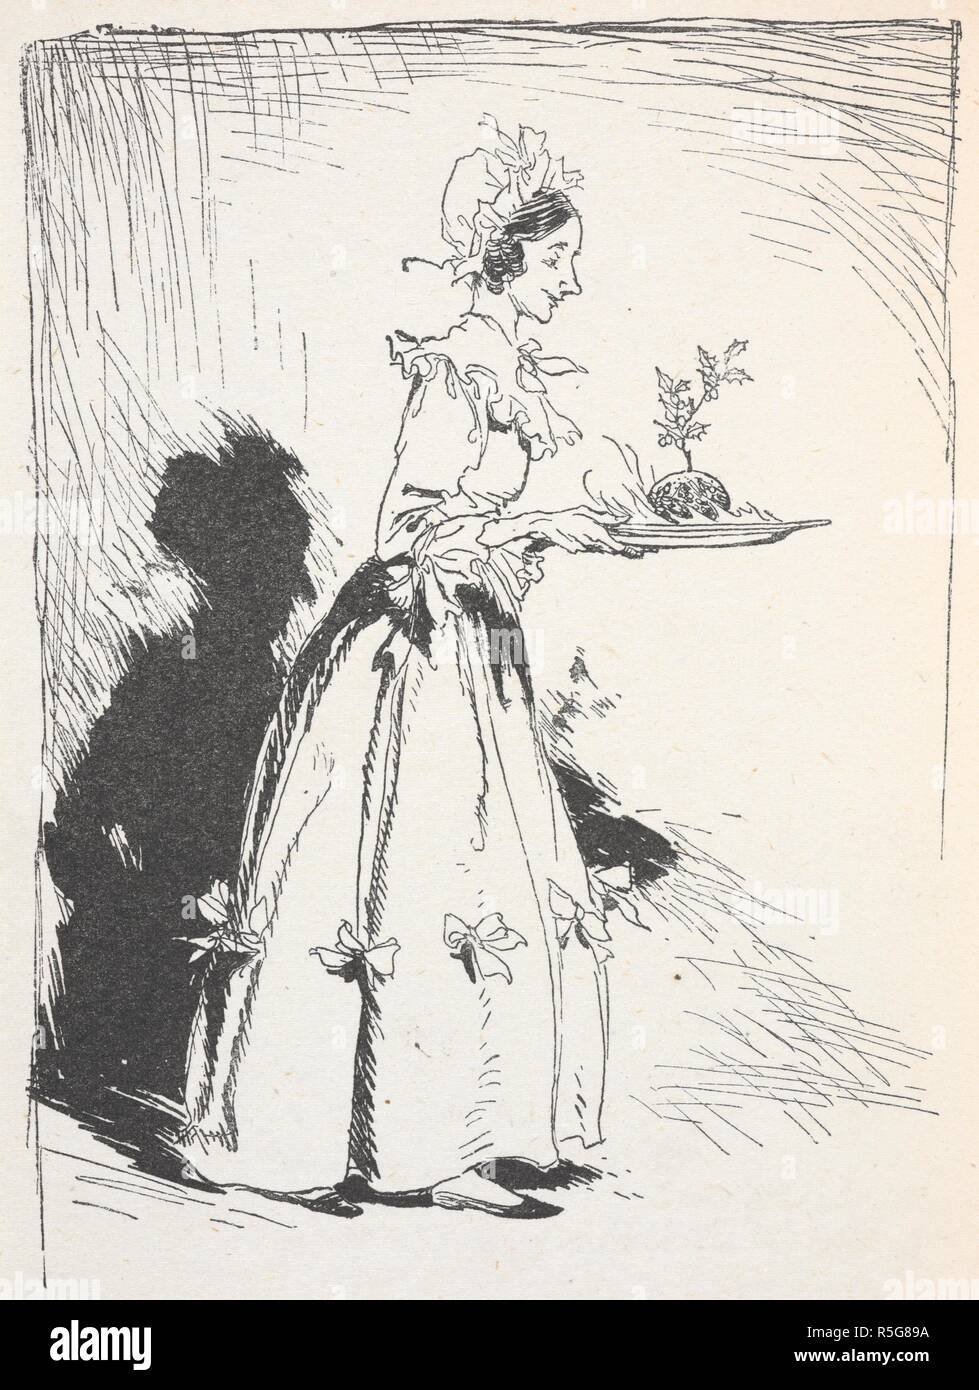 Illustration Of A Woman Carrying A Christmas Pudding A Christmas Carol Illustrated By Arthur Rackham London J B Lippincott Co Philadelphia Wiiliam Heinemann 1915 With The Pudding Source 012622 G 37 Page